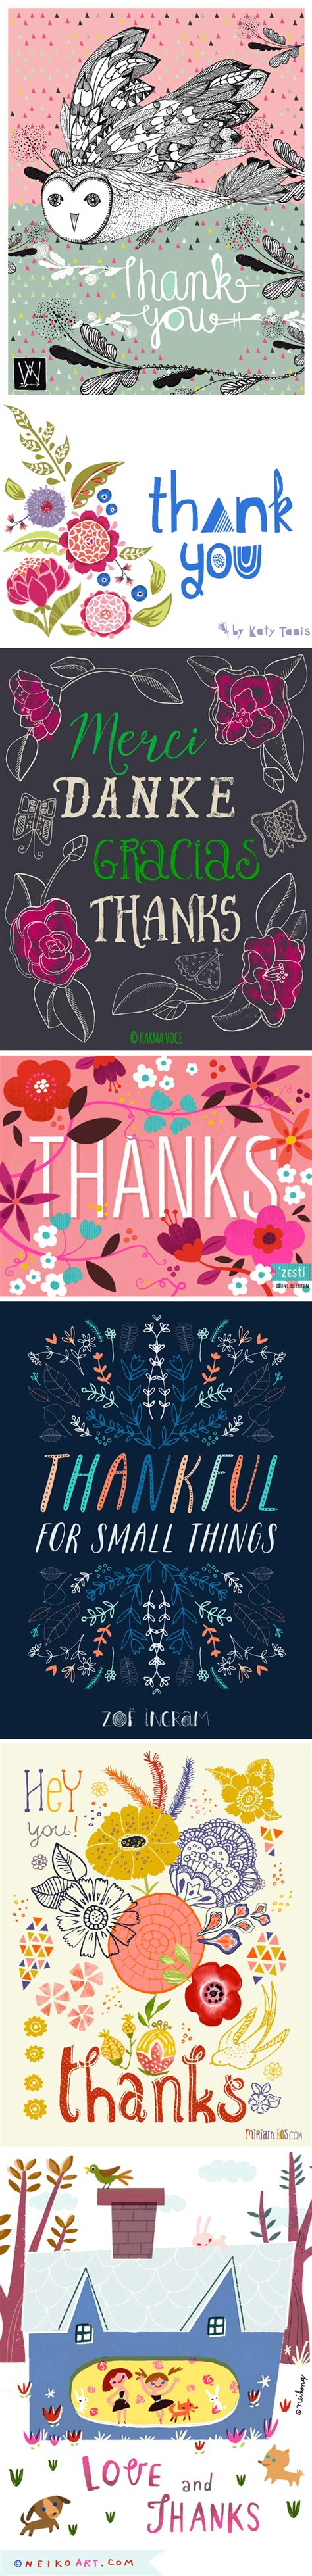 Thank You Card For Giveaways - forest foundry thank you card giveaway repin see blog for details we are thankful